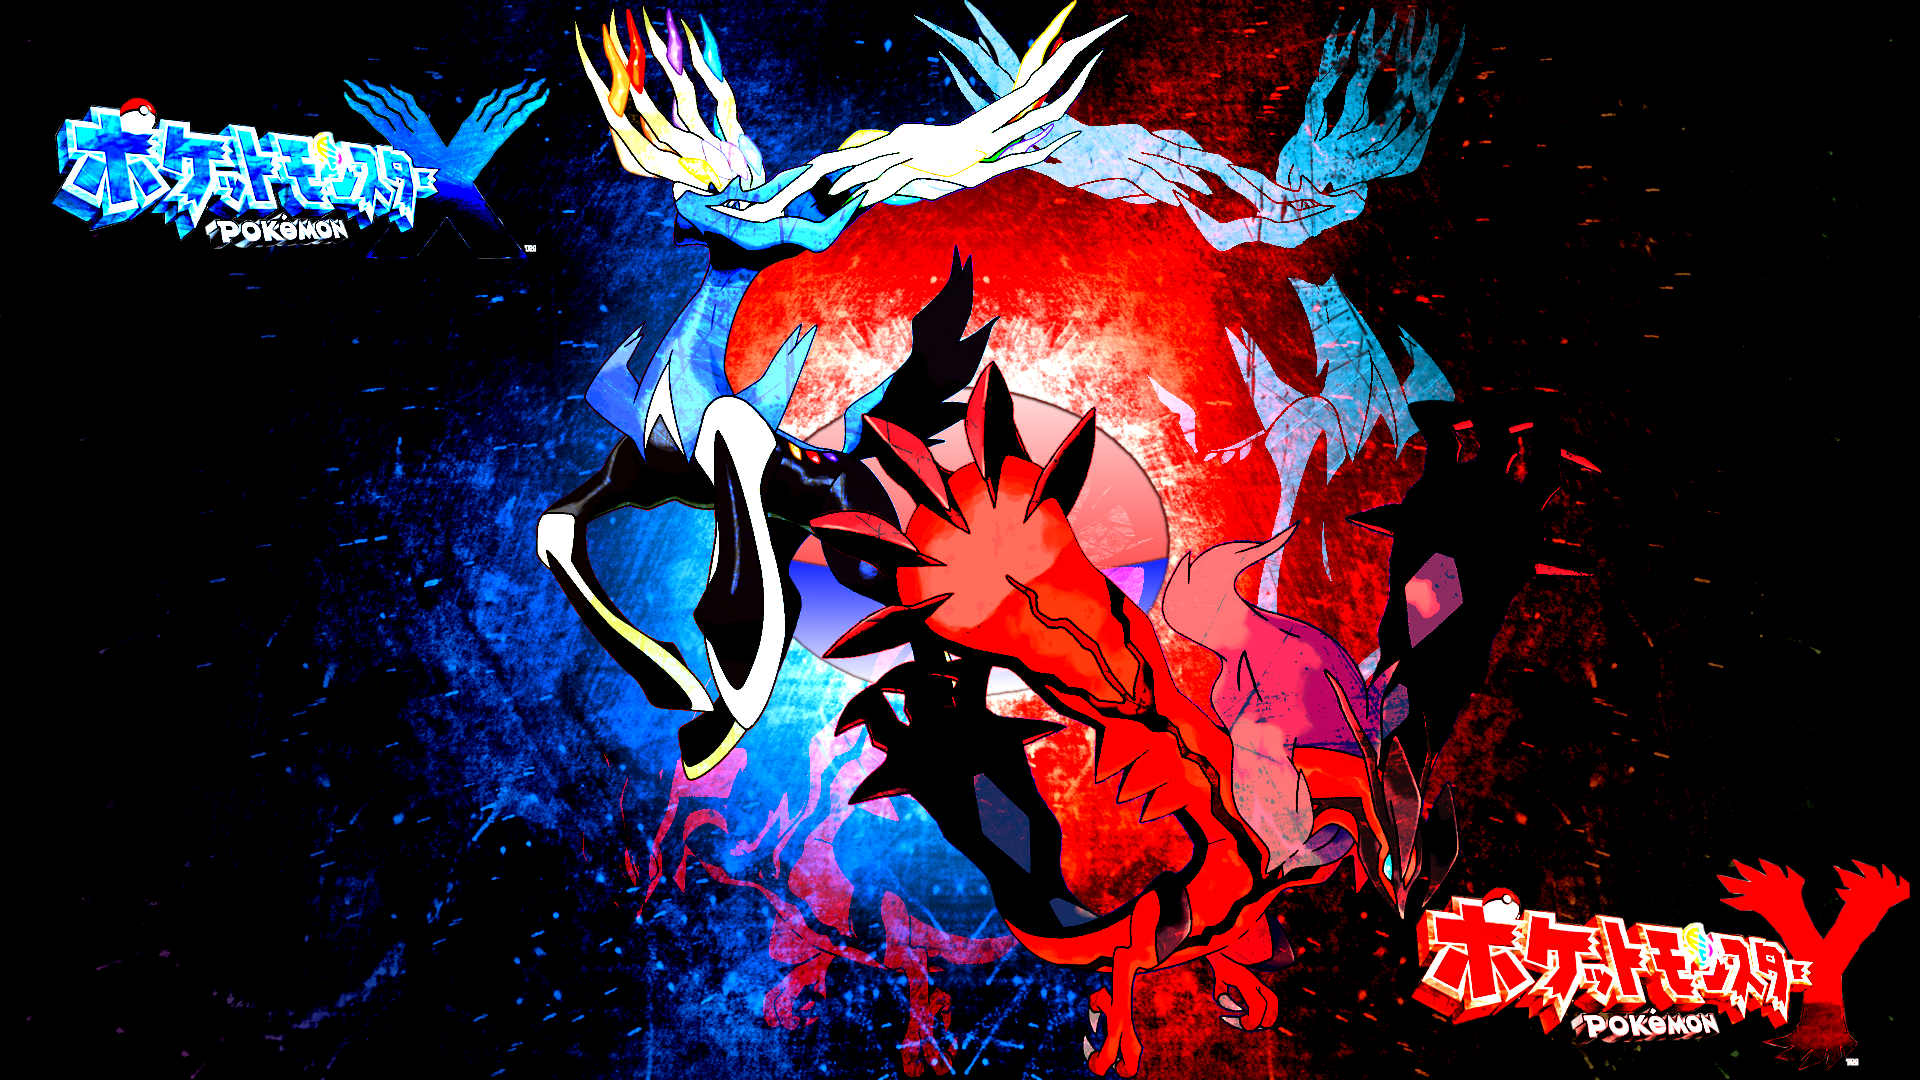 Pokemon x and y xerneas and yveltal by fruitynite on deviantart pokemon x and y xerneas and yveltal by fruitynite voltagebd Choice Image